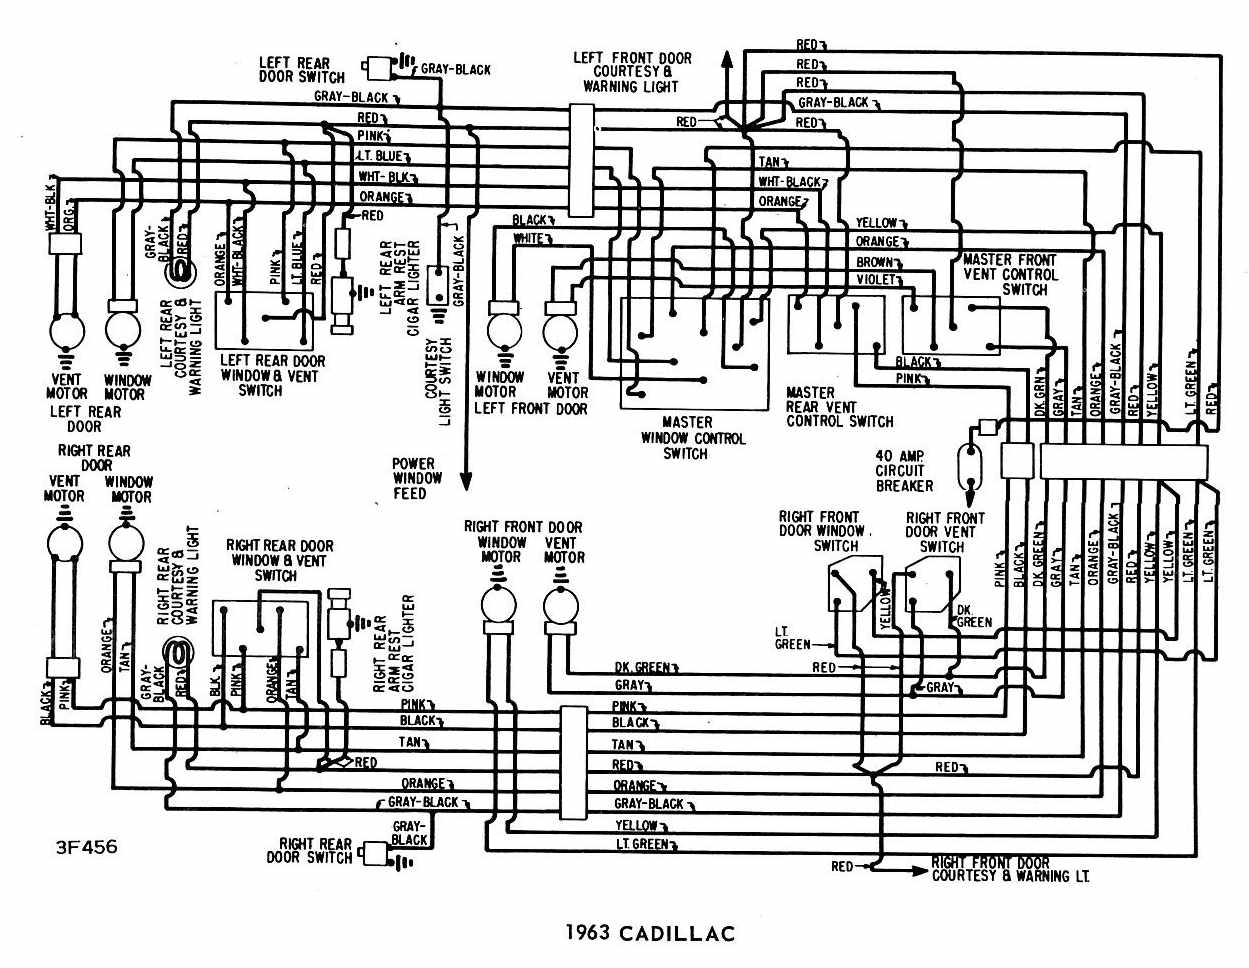 Cadillac 1963 Windows Wiring Diagram | All about Wiring Diagrams